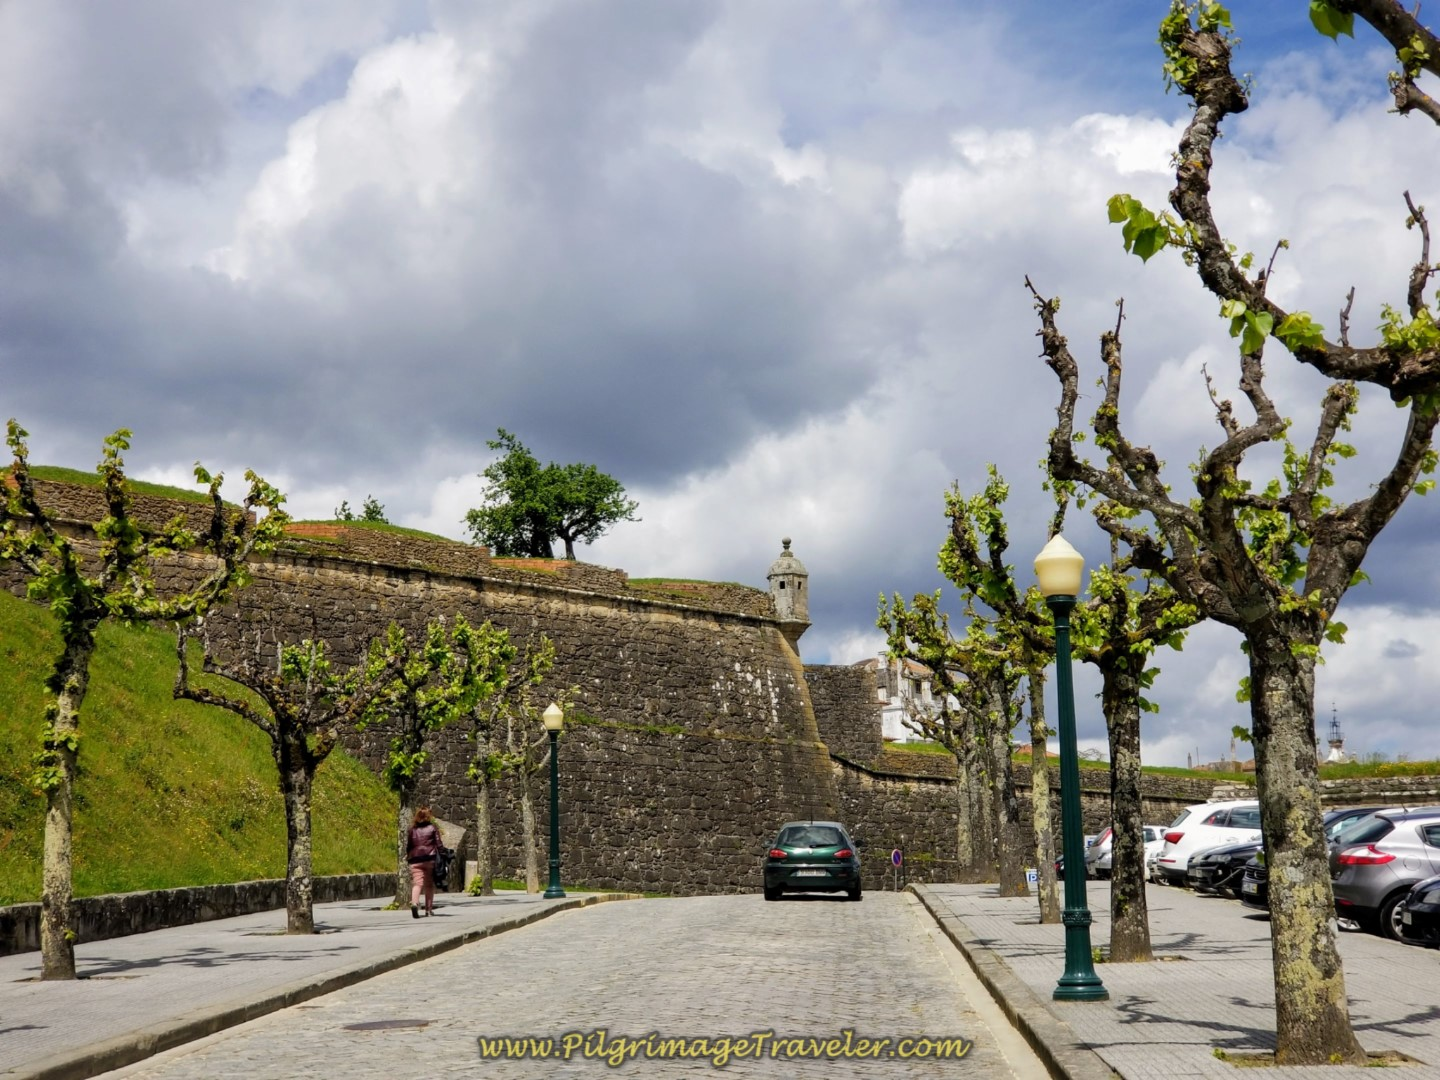 The Fortified Walls of Valença Rise Ahead on day nineteen on the Central Route of the Portuguese Camino